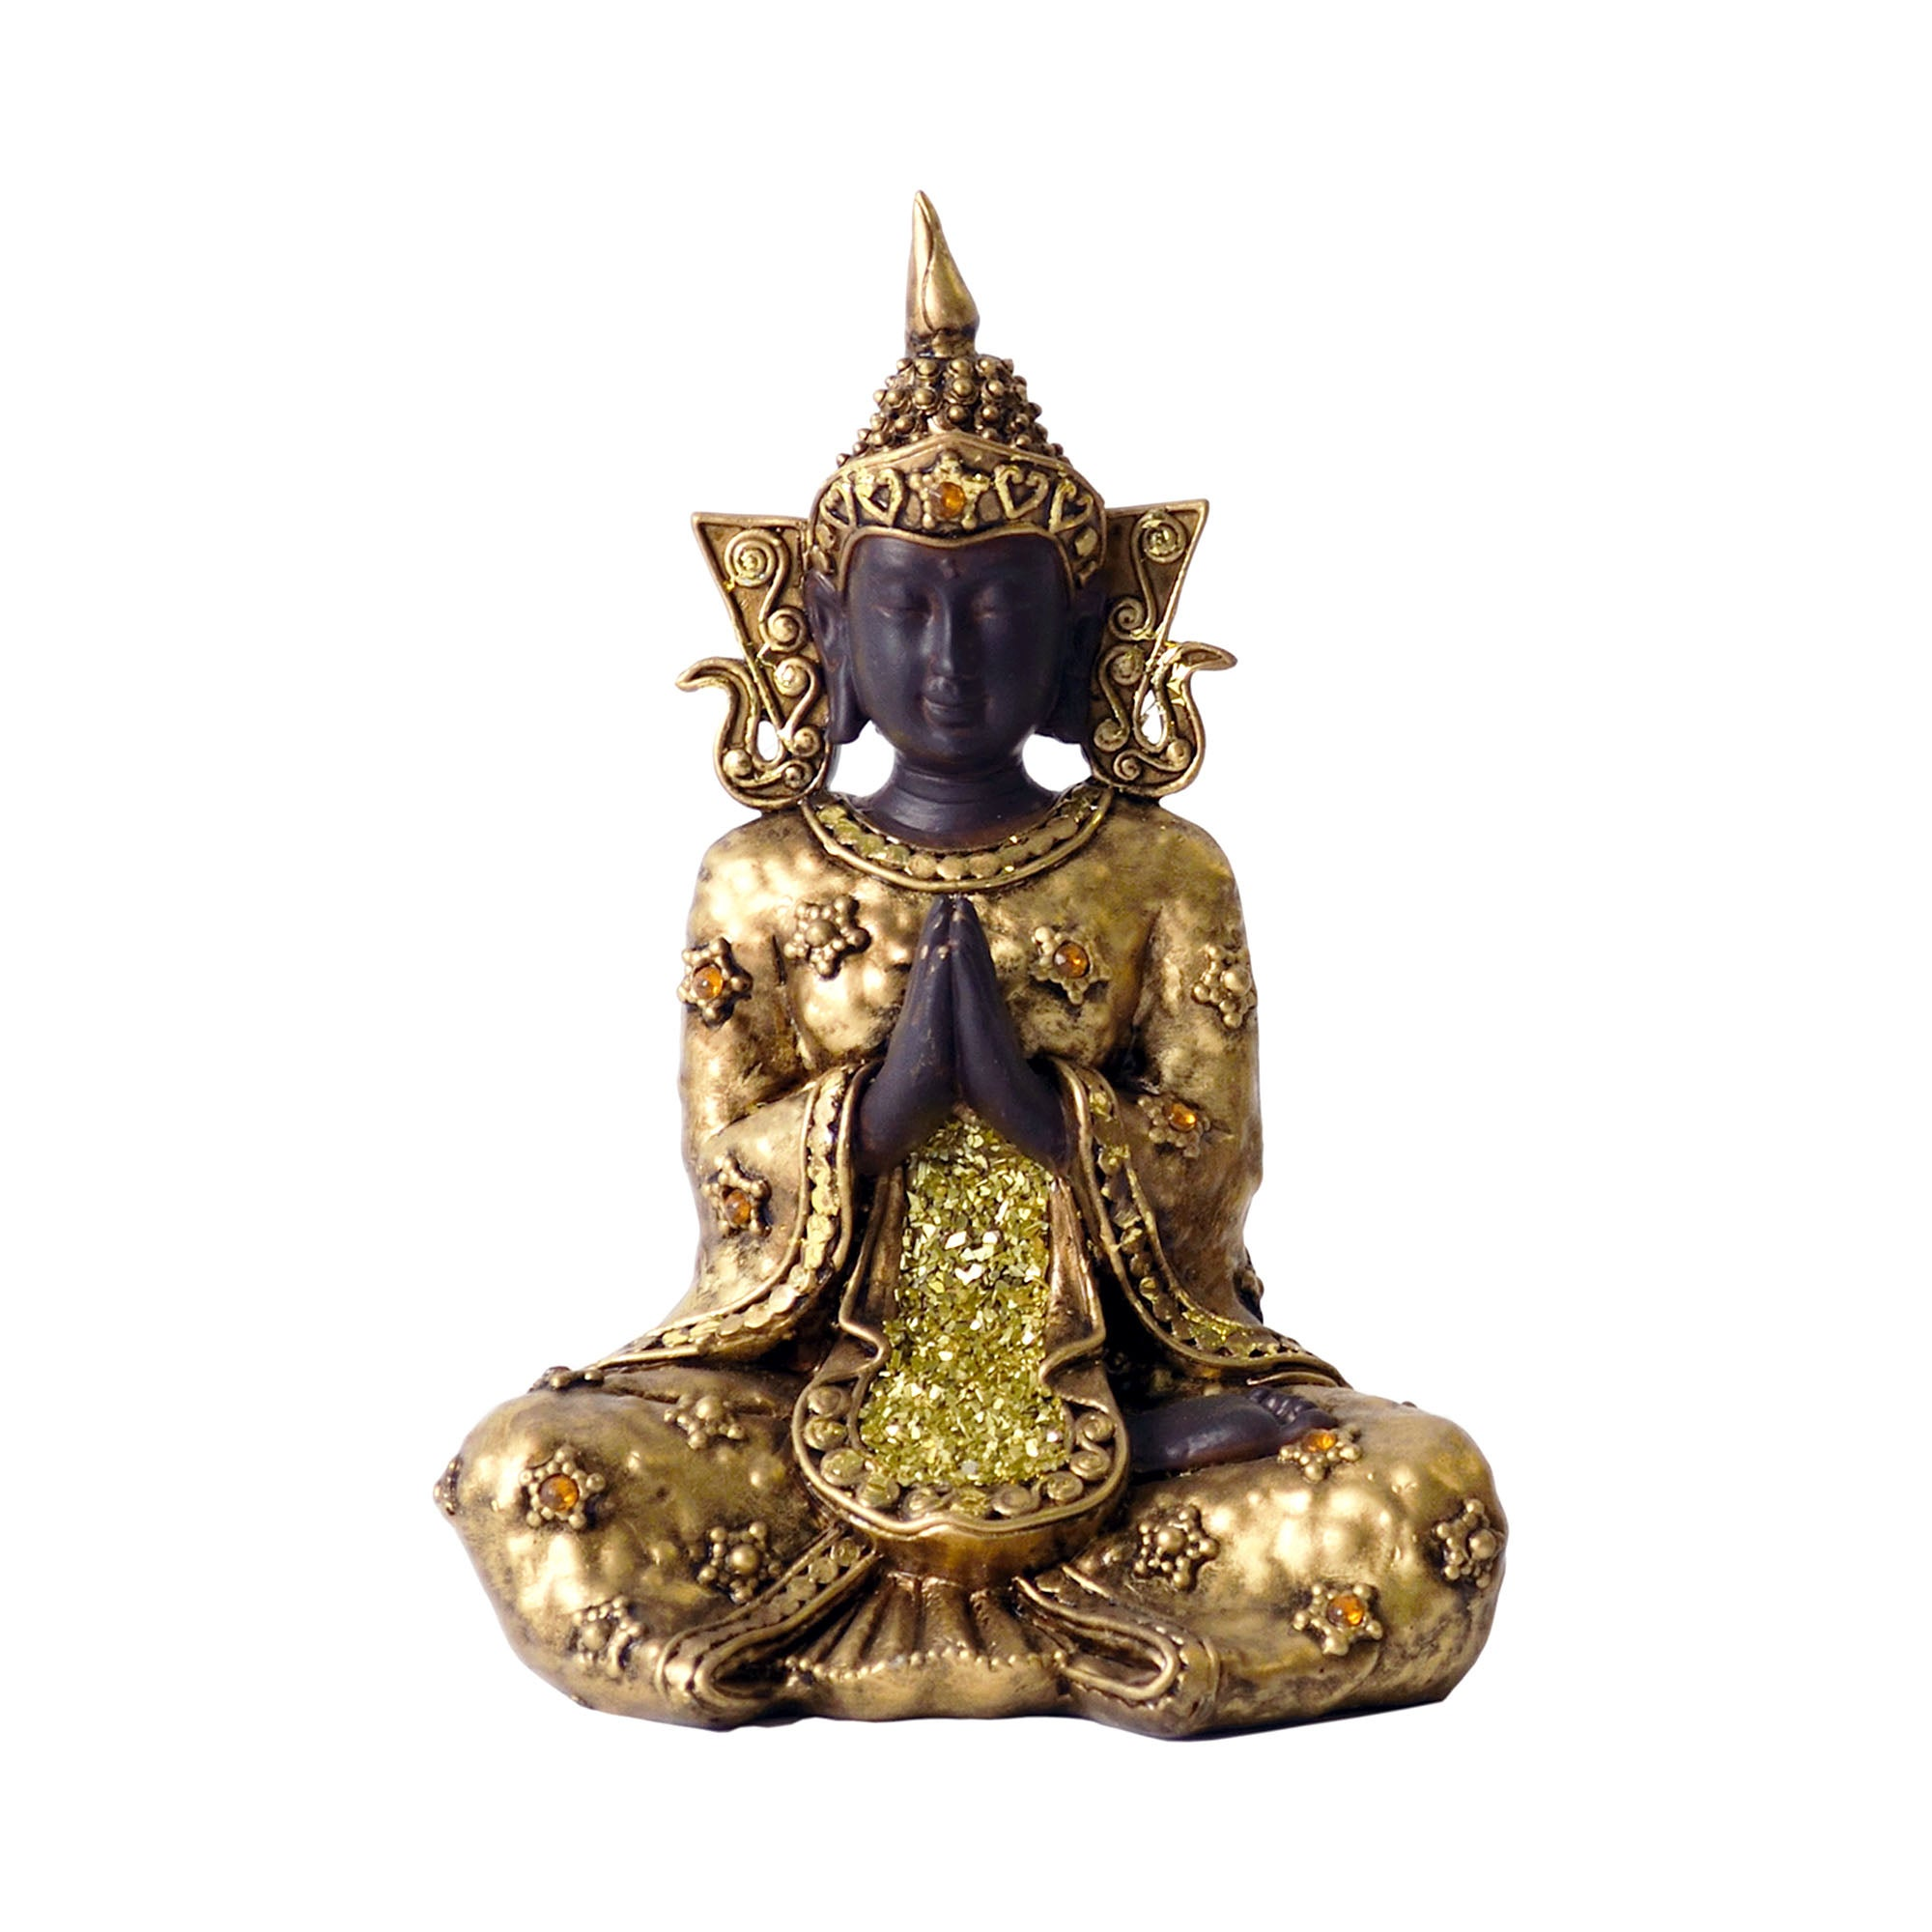 Burnt Sienna Collection Sitting Praying Buddha